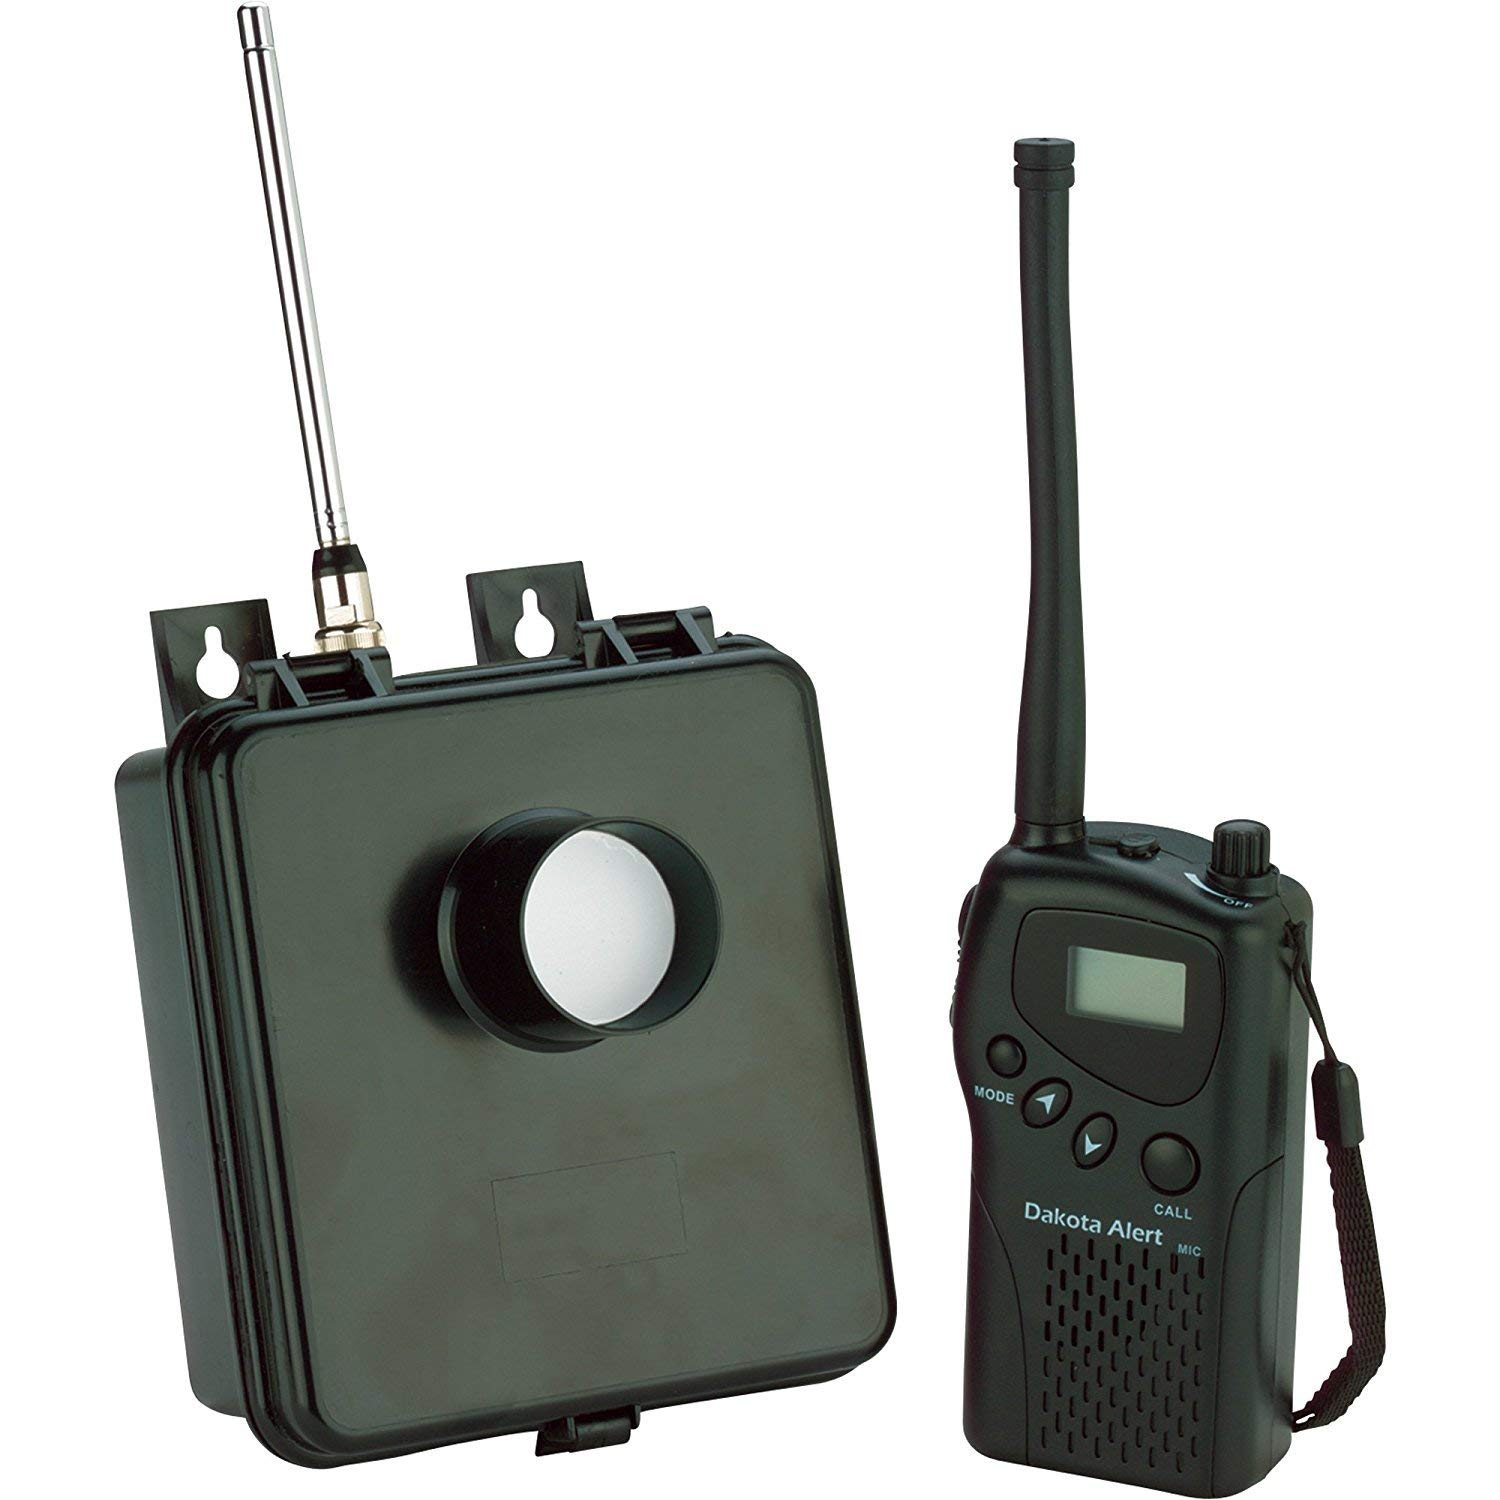 Dakota Alert MURS-HT-KIT Motion Sensor Kit – MURS Alert Transmitter Box and Handheld M538-HT Wireless VHF Transceiver…